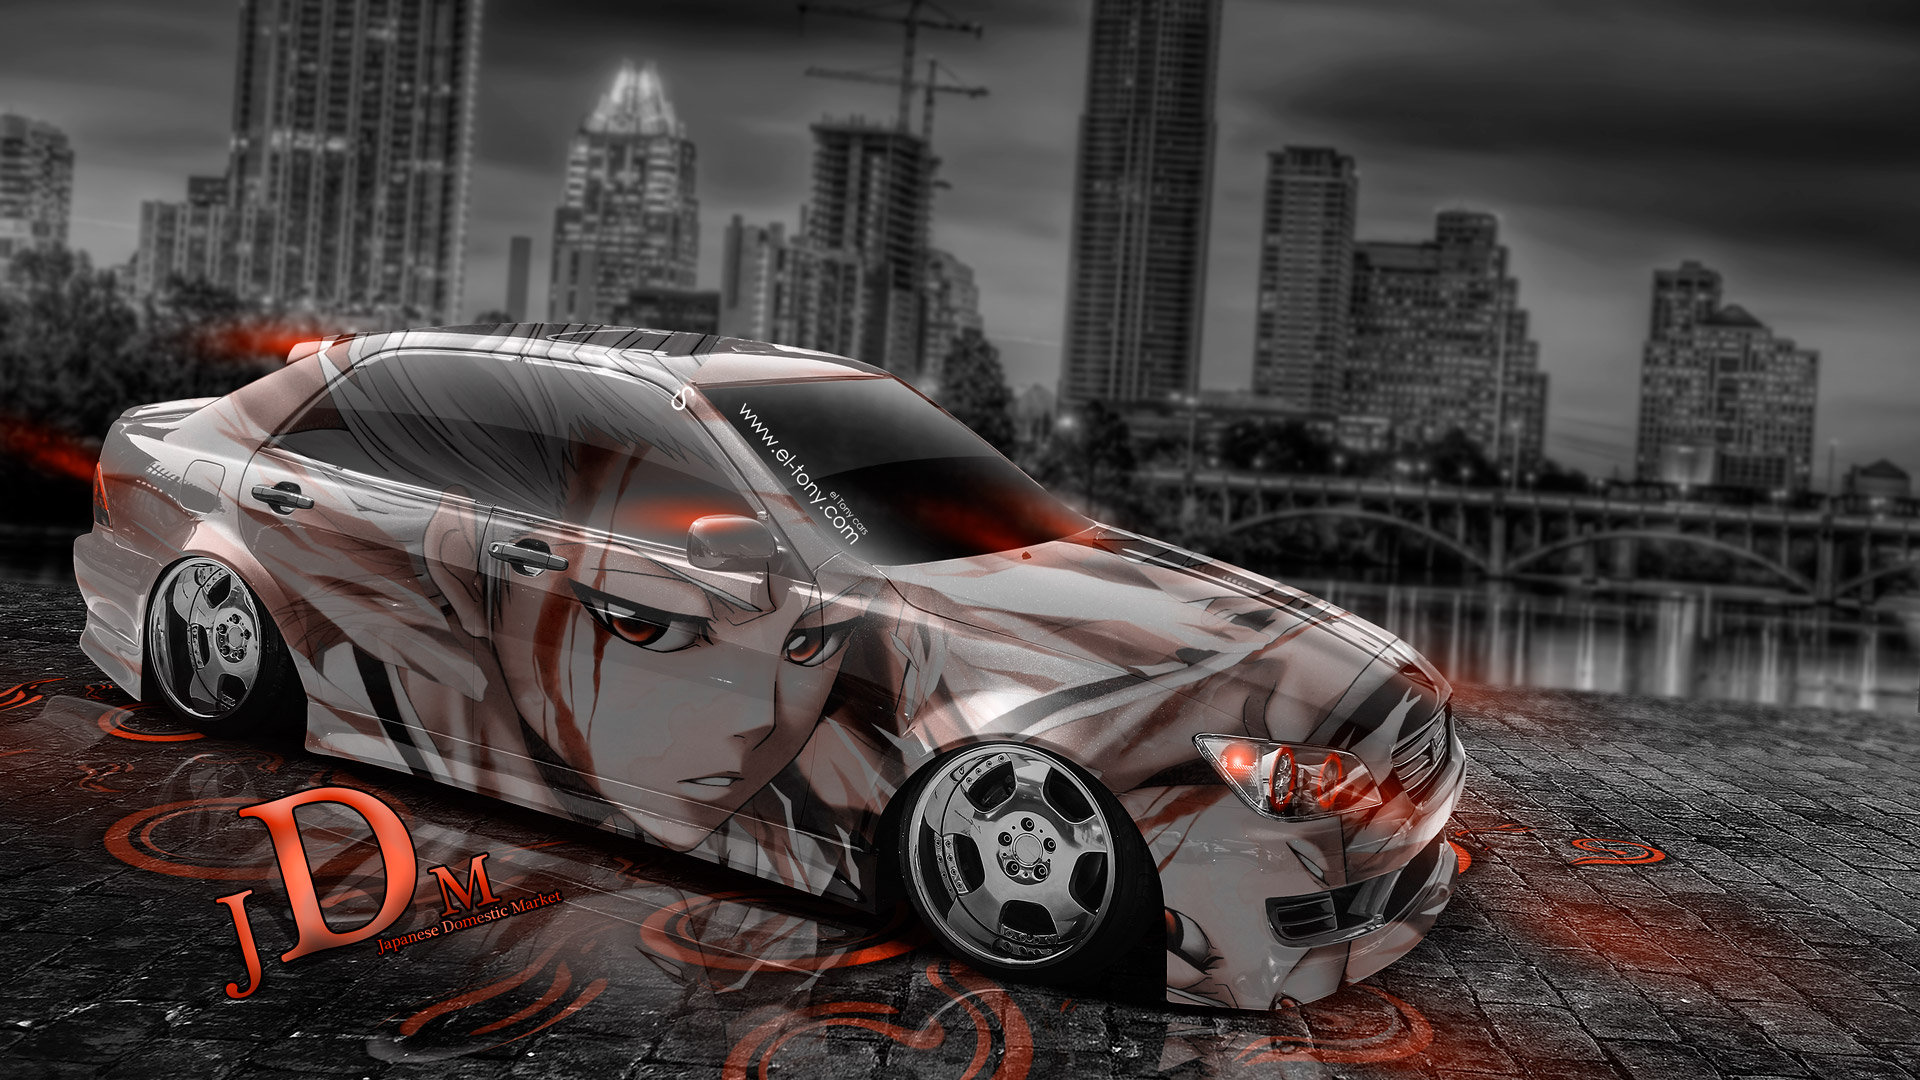 Toyota Altezza Tuning JDM Front Super Fire Flame Abstract Car 2016 .